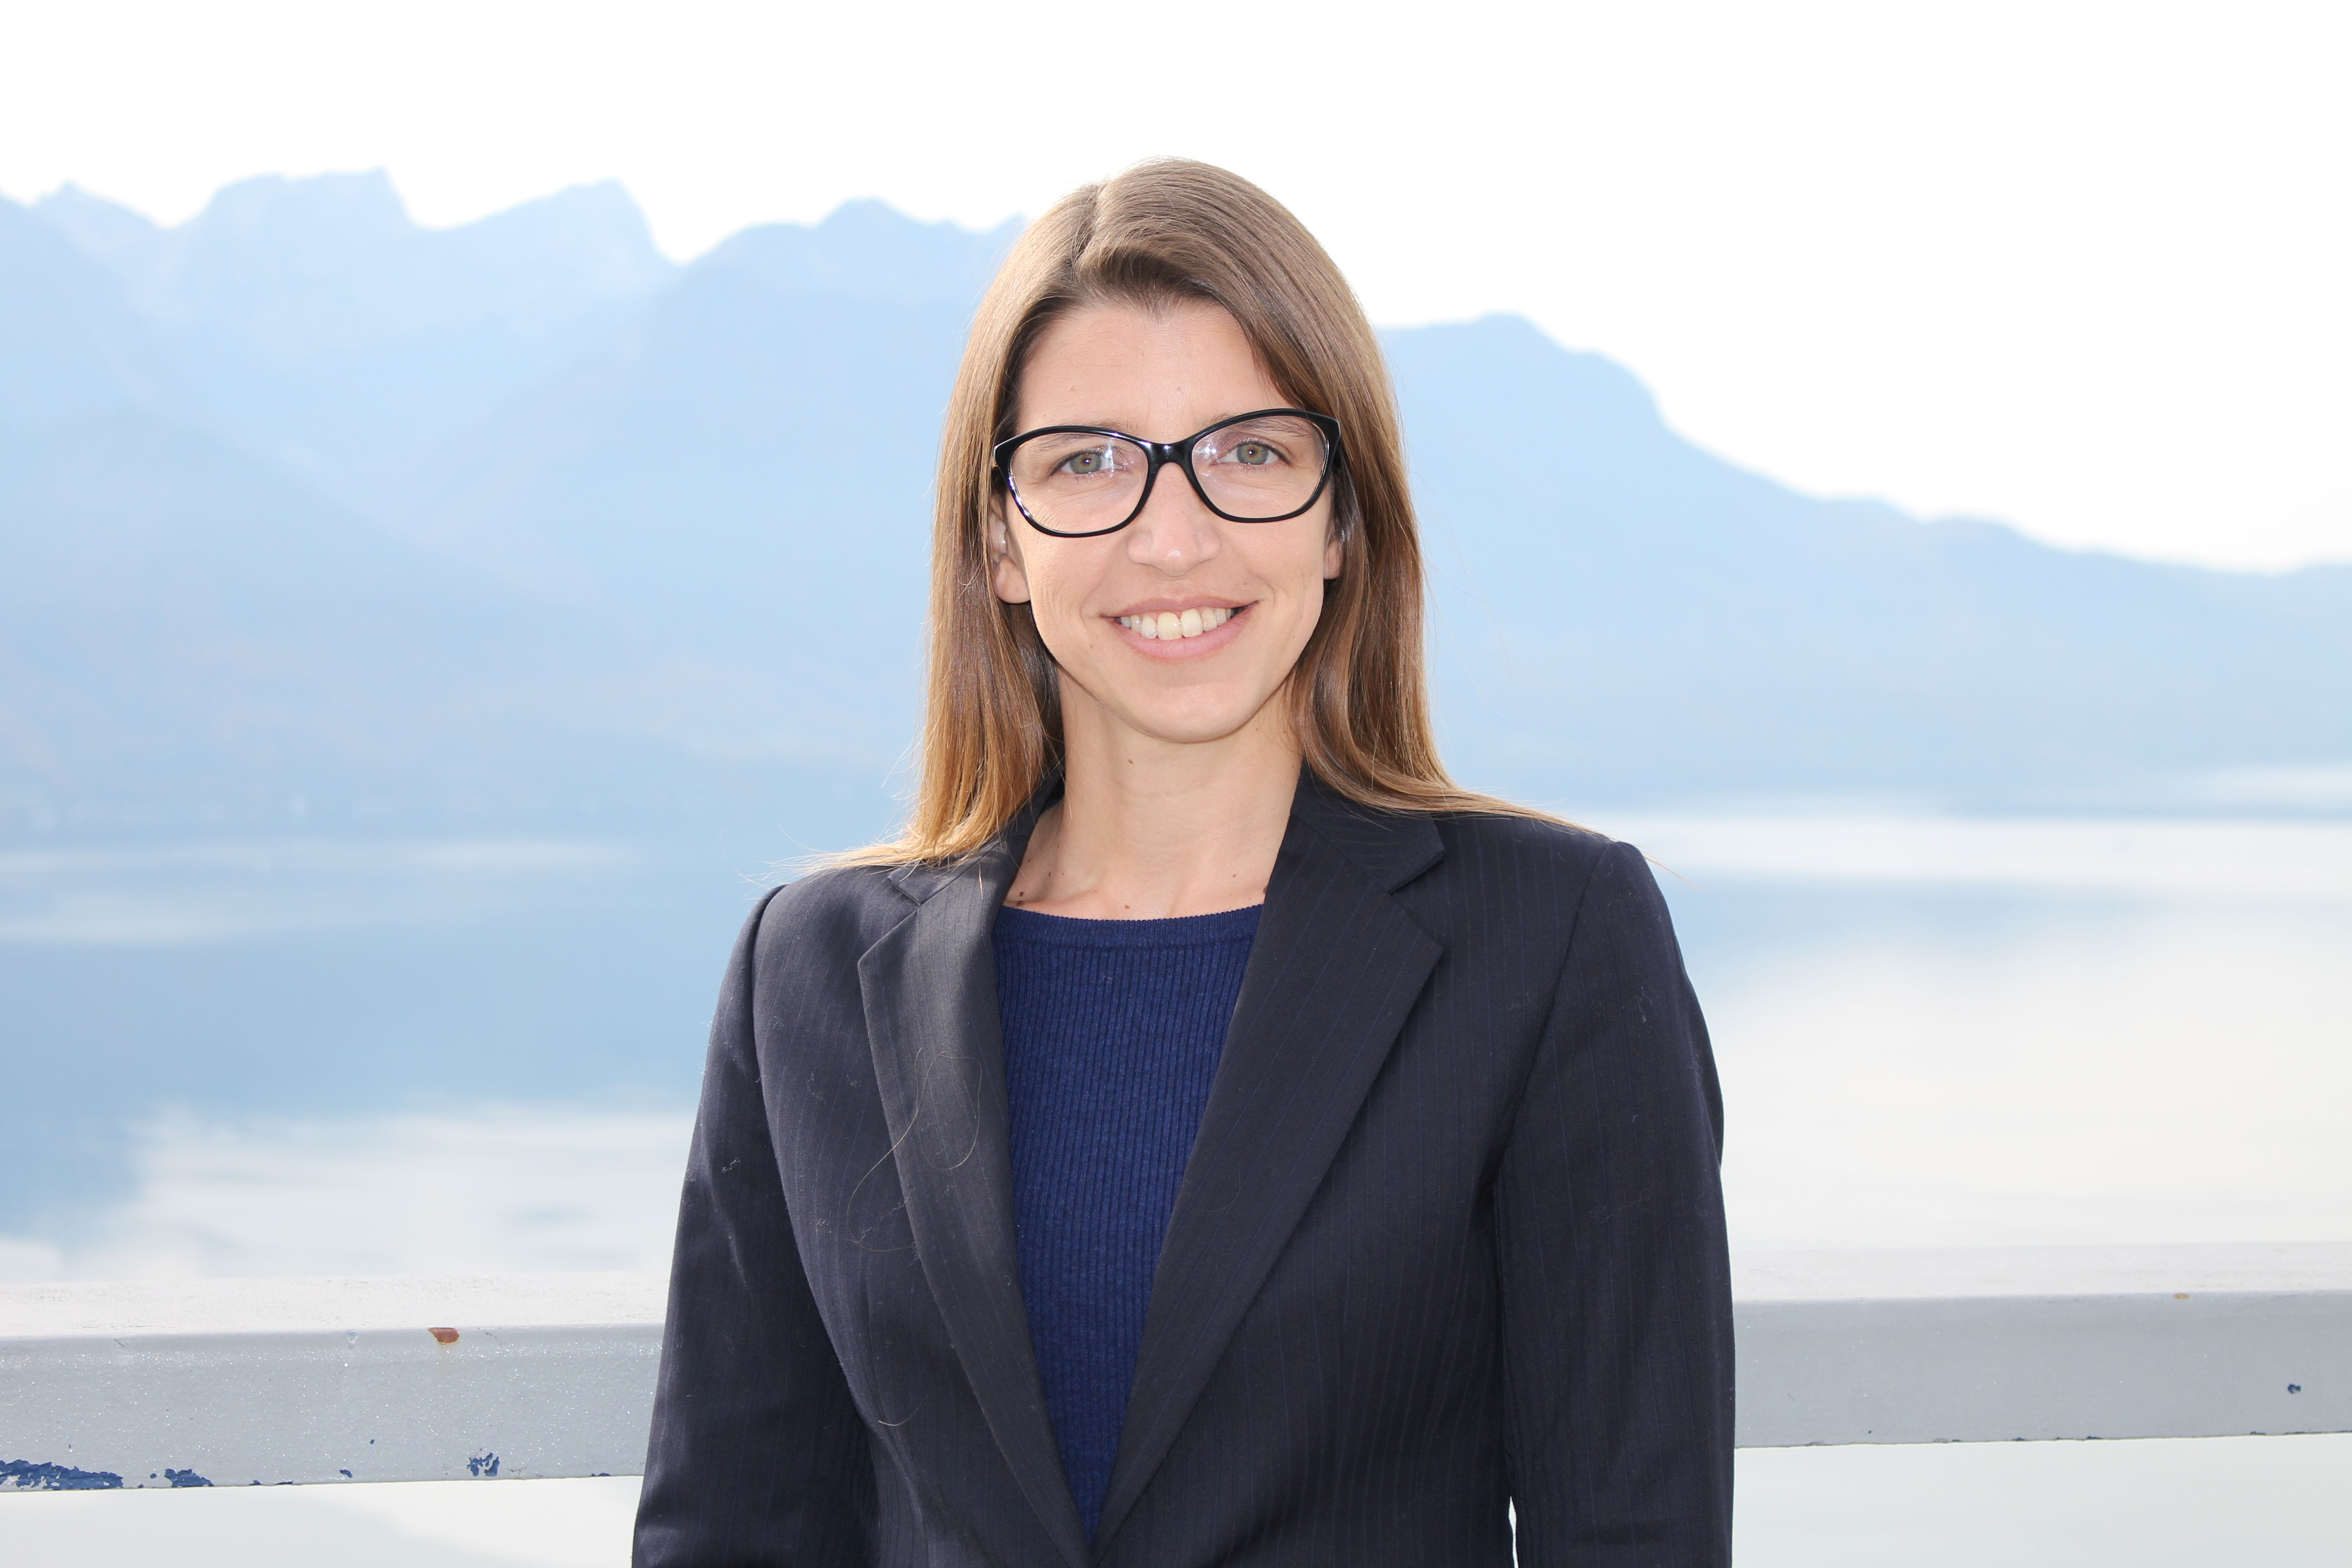 Marianna Palmeiro, Head Of Wellness To Business Executive Education, Glion Institute Of Higher Education